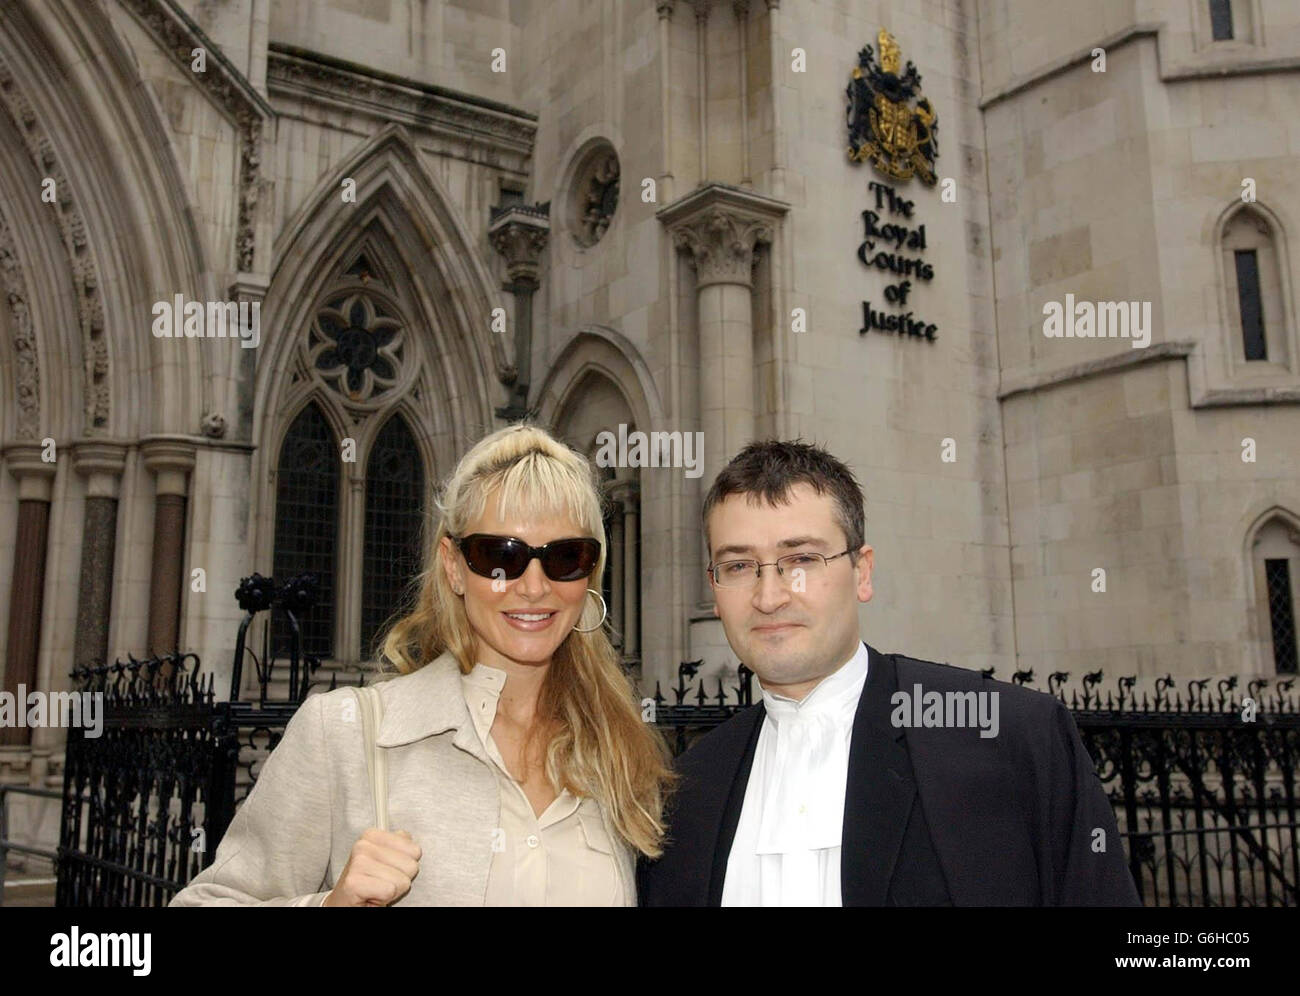 Caprice in the High Court - Stock Image